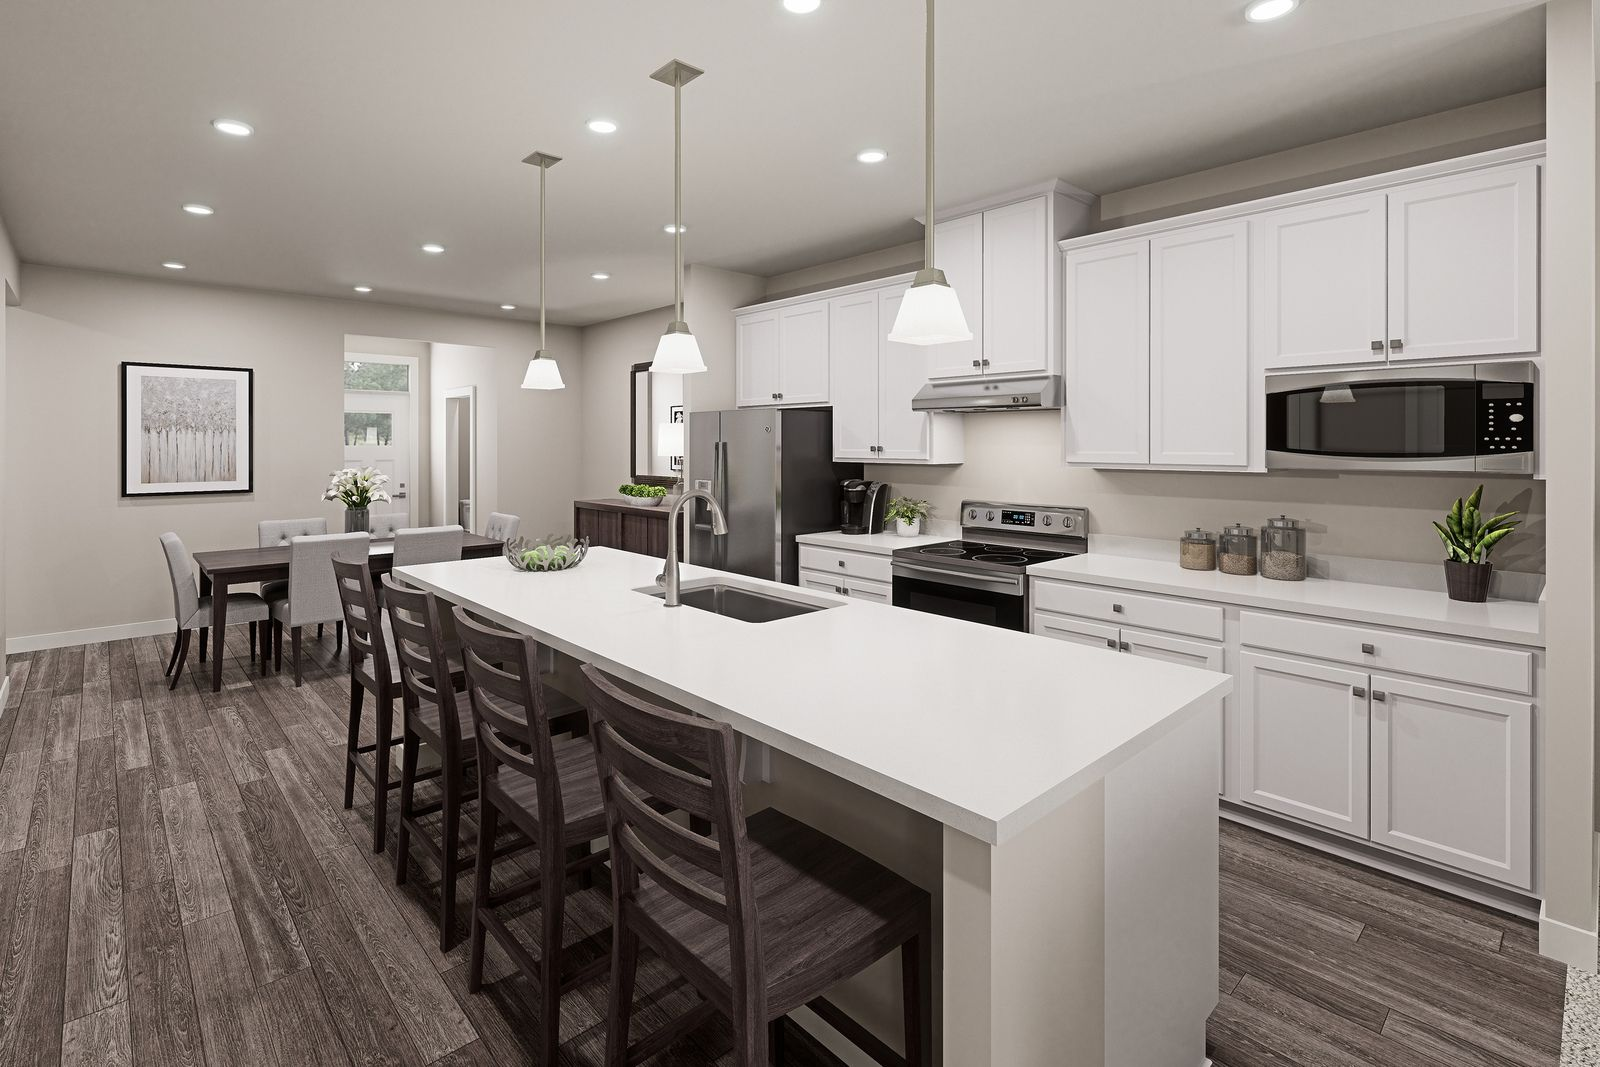 Kitchen featured in the Caroline G By Ryan Homes in Akron, OH